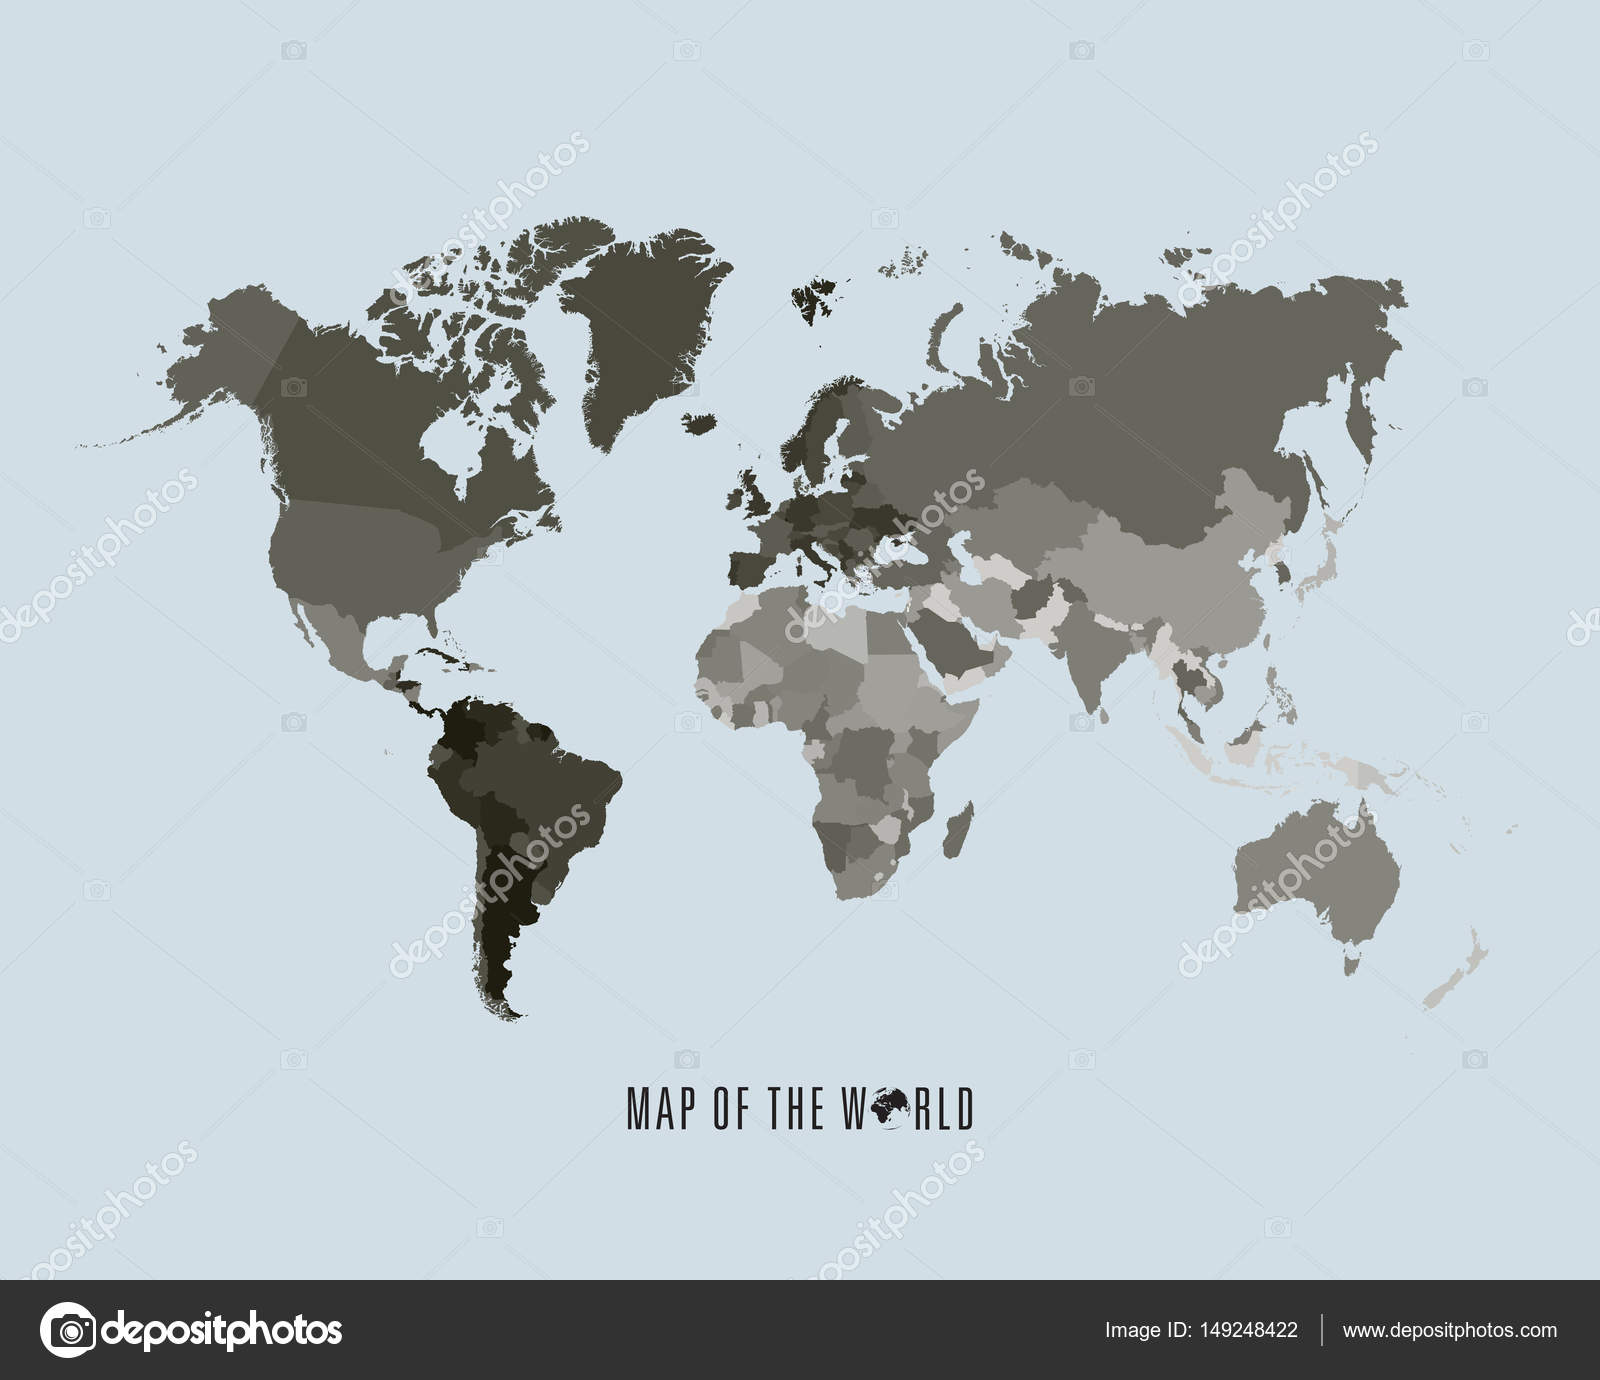 World map with different colored continents - Illustration — Stock ...